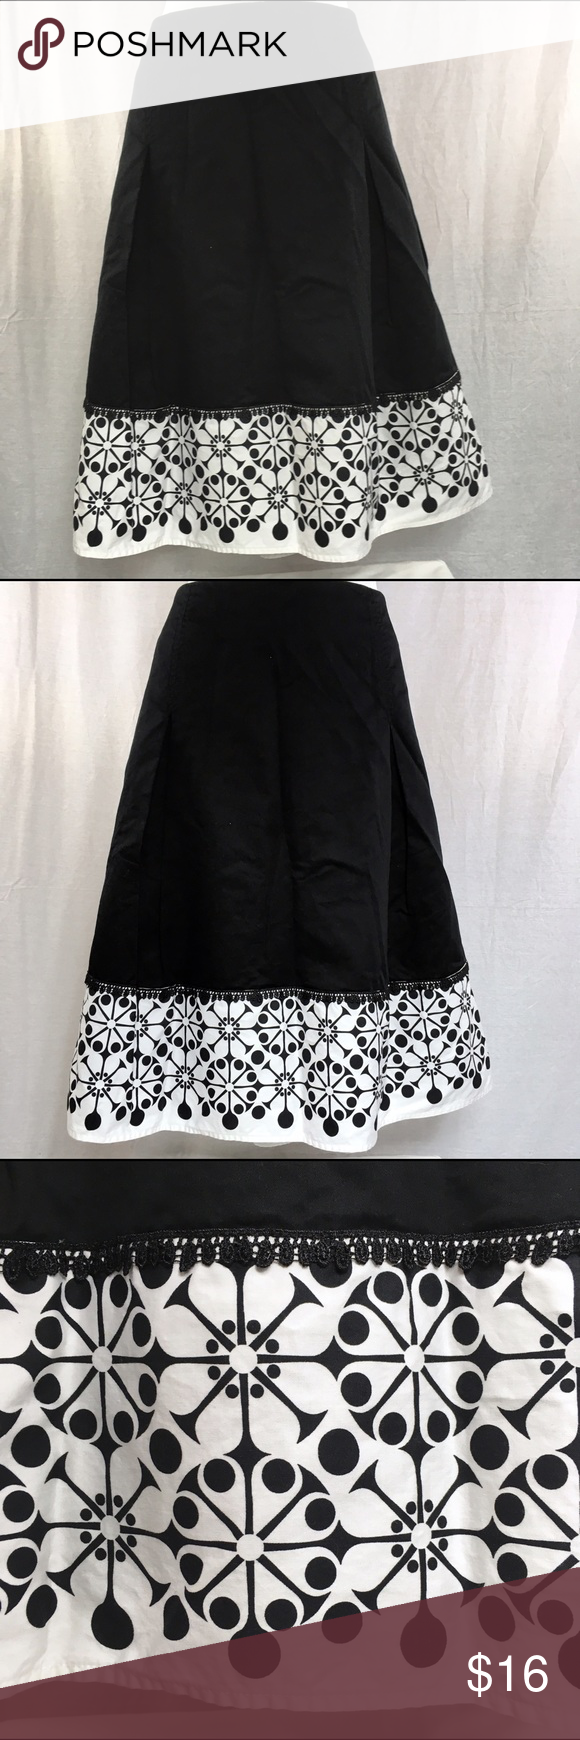 Christopher & Banks Black White Skirt - Size 12 This skirt is in great condition.  It has been gently loved.  Laying flat, the waist measures 17 inches across.  From the top of the waistband toward the knee, it measures 25 inches. Christopher & Banks Skirts A-Line or Full